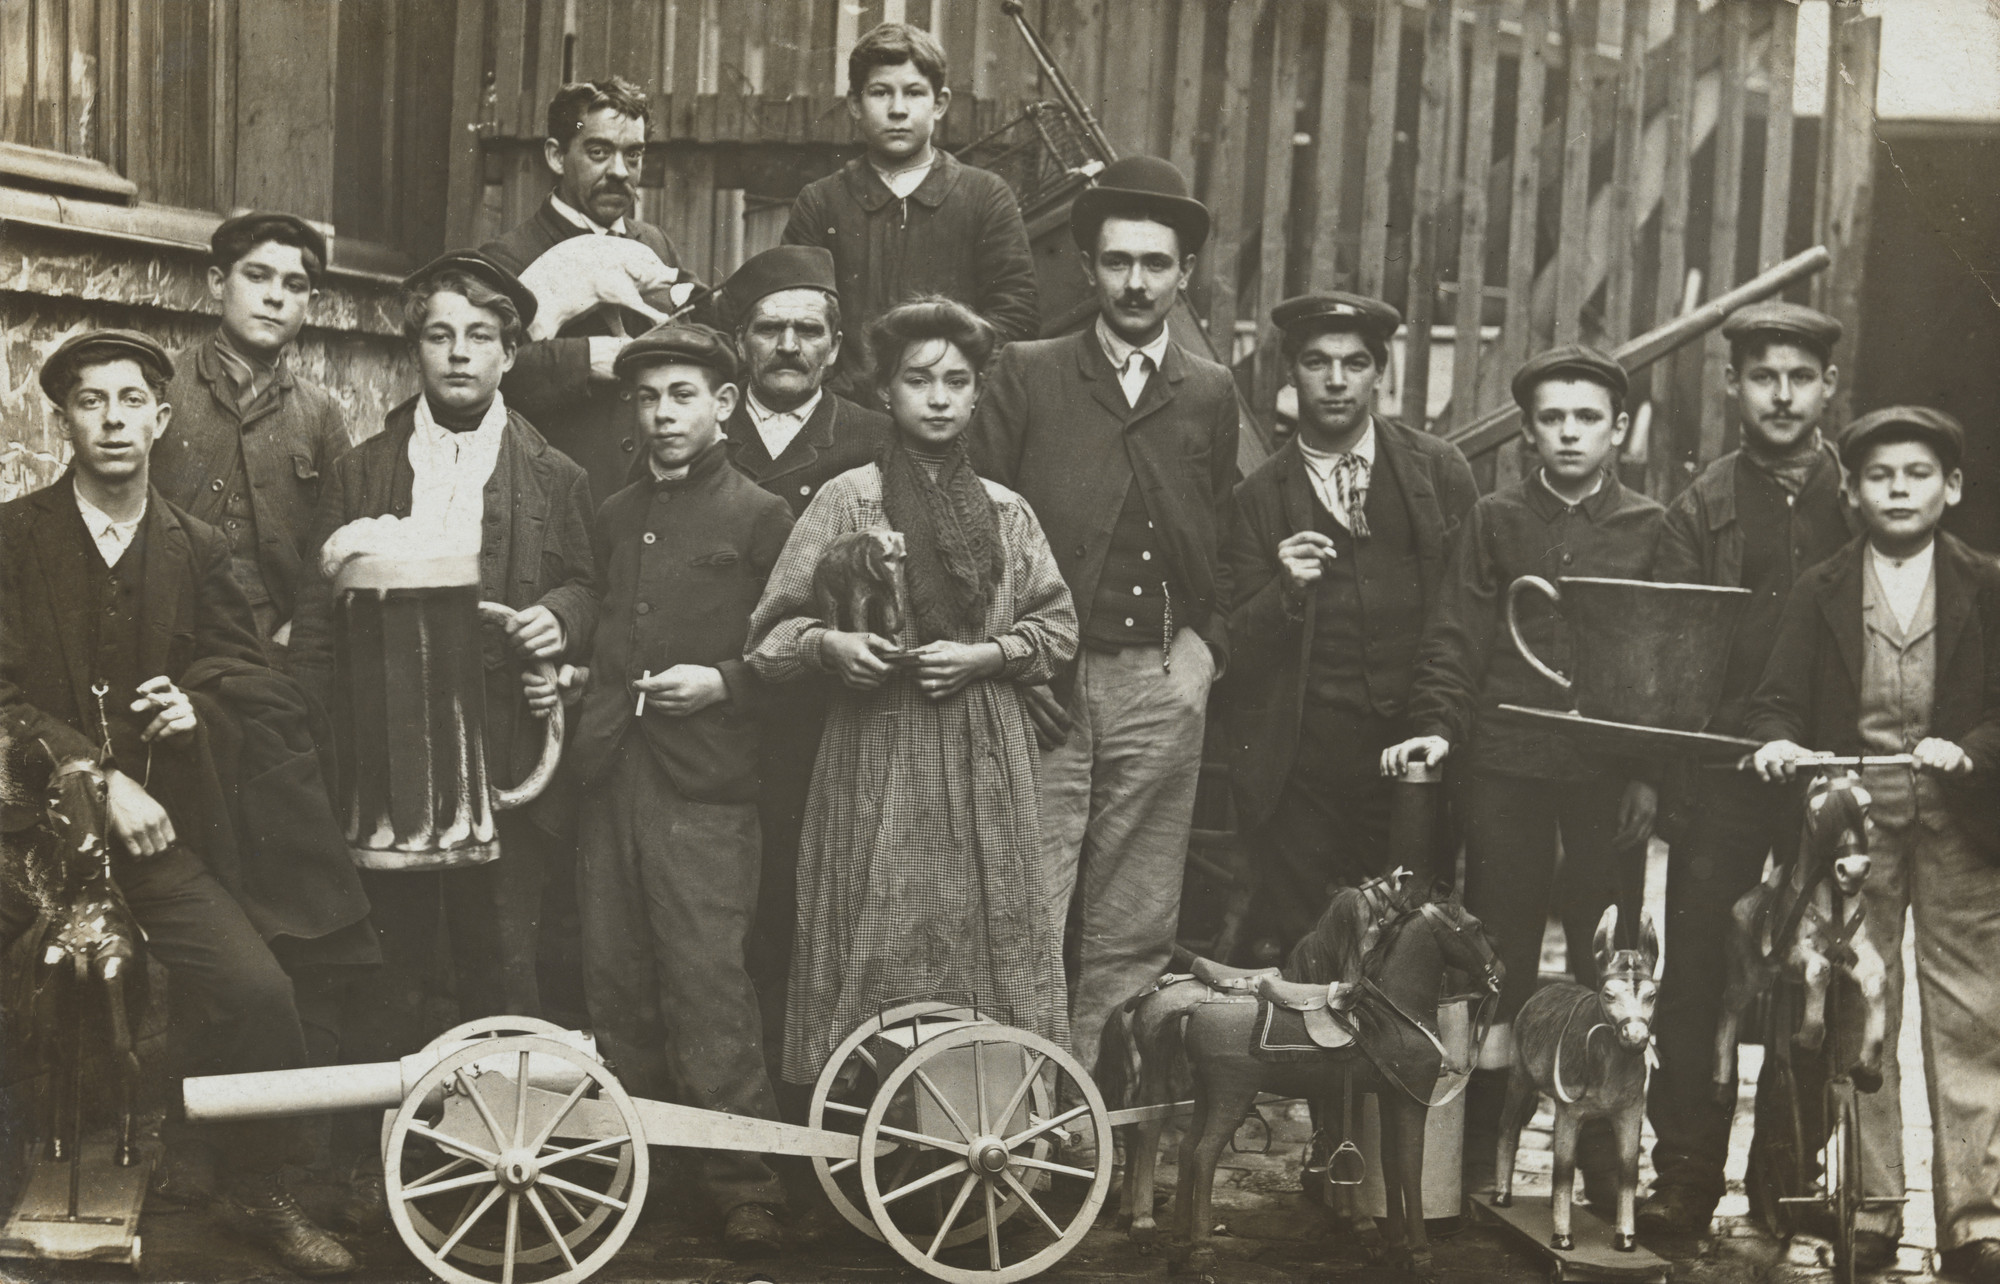 Unknown photographer. Fabrique de jouets, La Plaine Saint-Denis. 1906